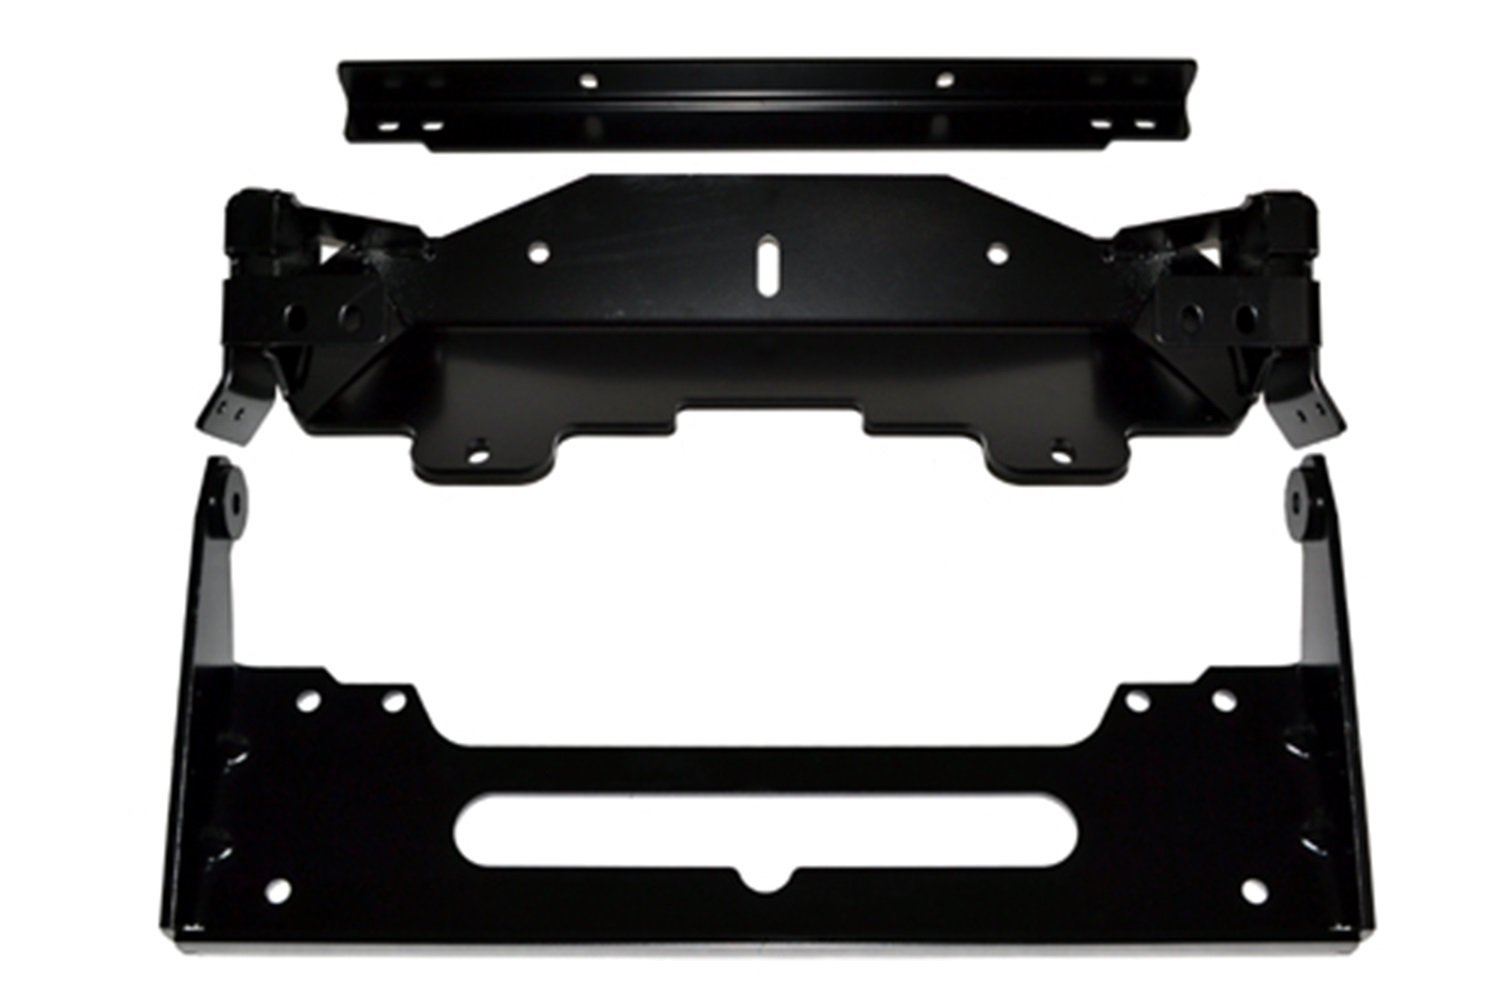 FRONT PLOW MOUNT KIT RANGER XP900